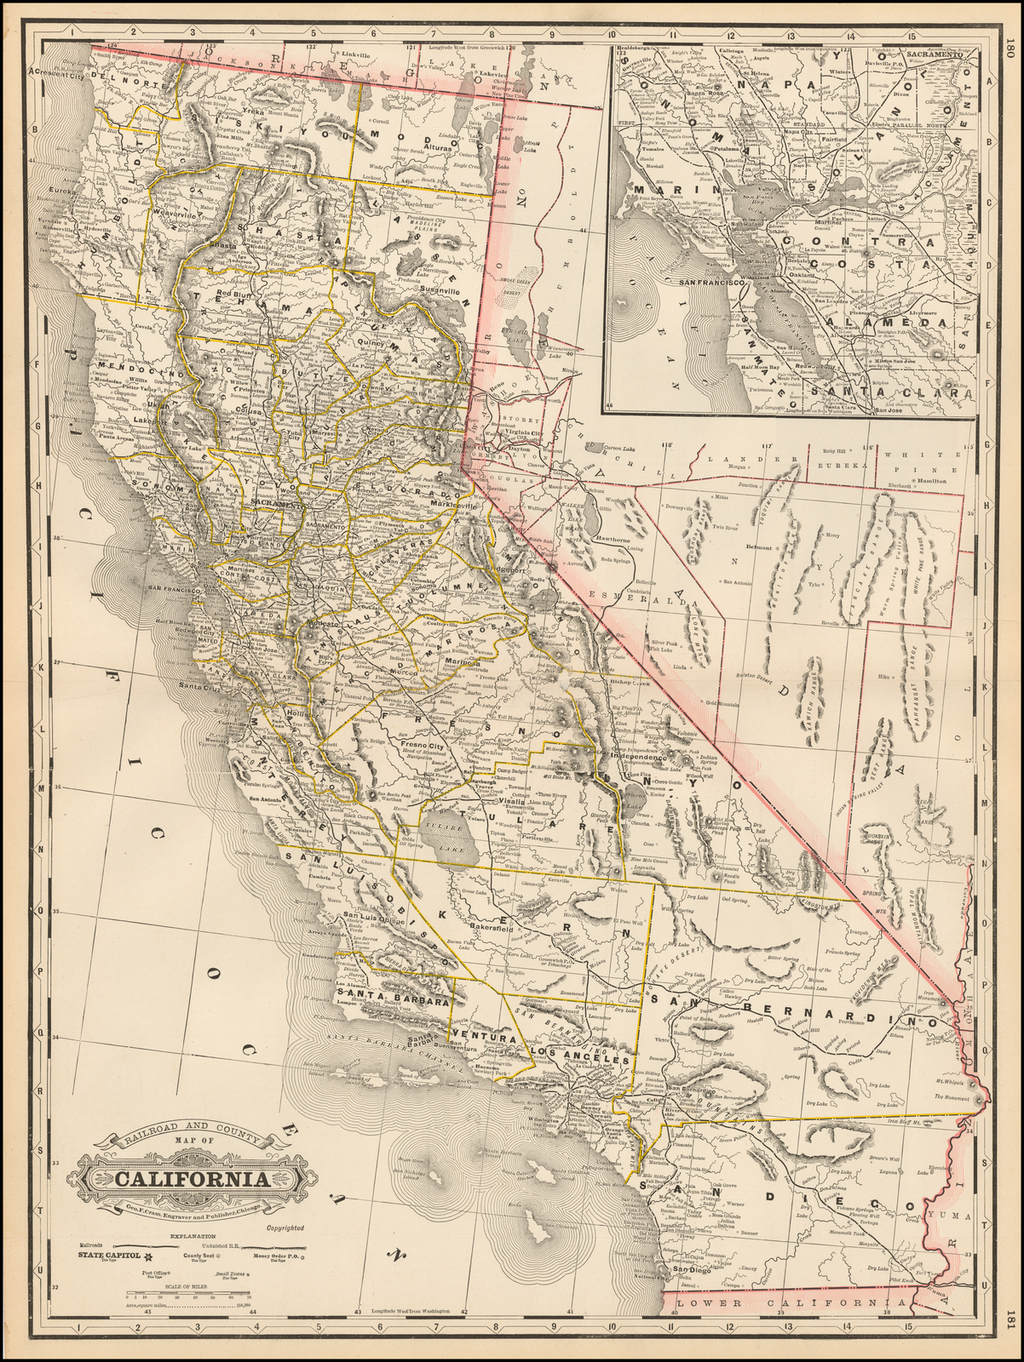 Railroad and County Map of California By George F. Cram